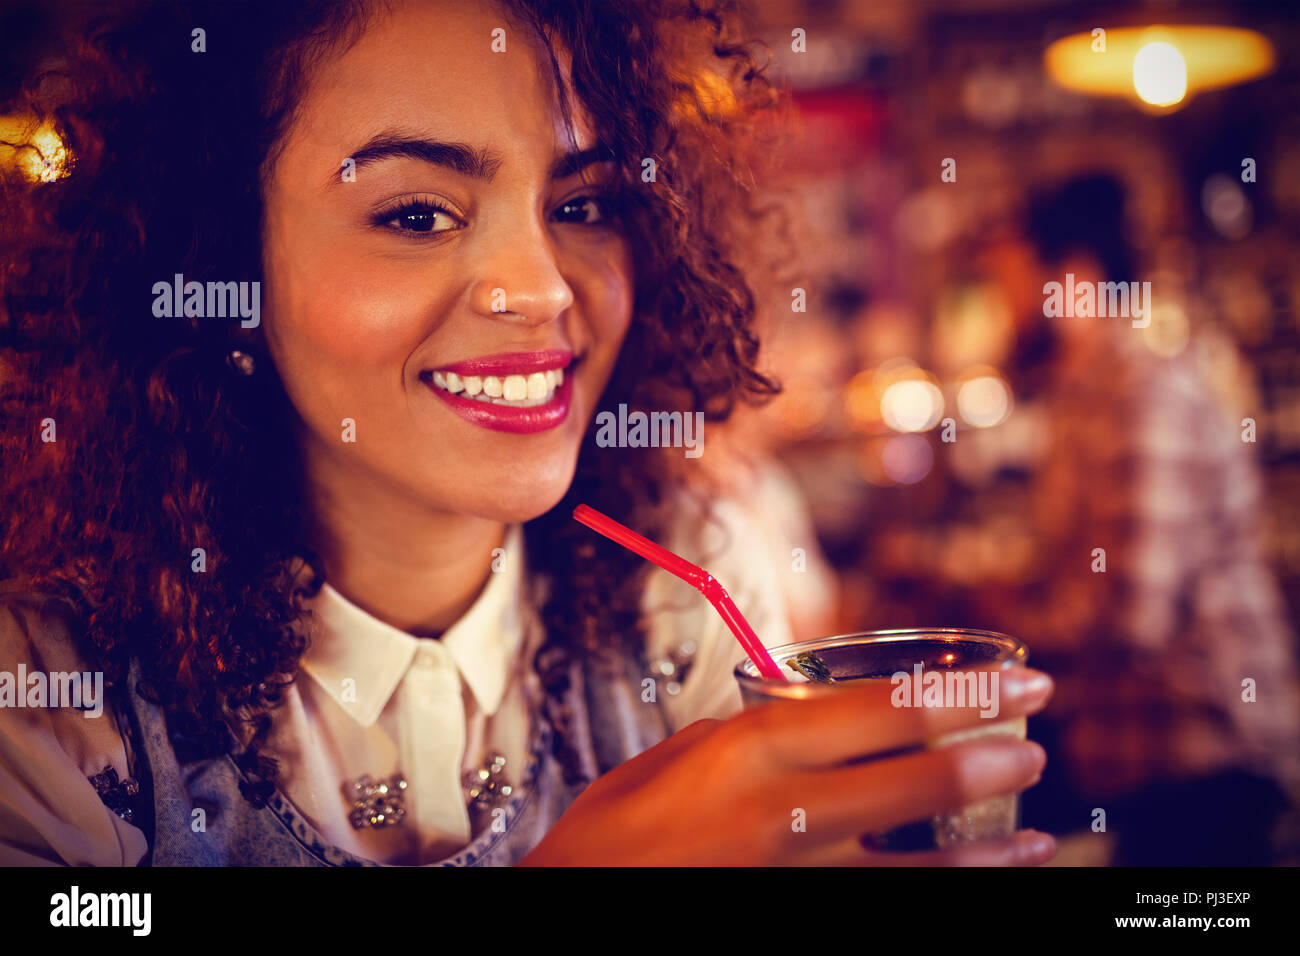 Portrait of young woman having a cocktail drink - Stock Image